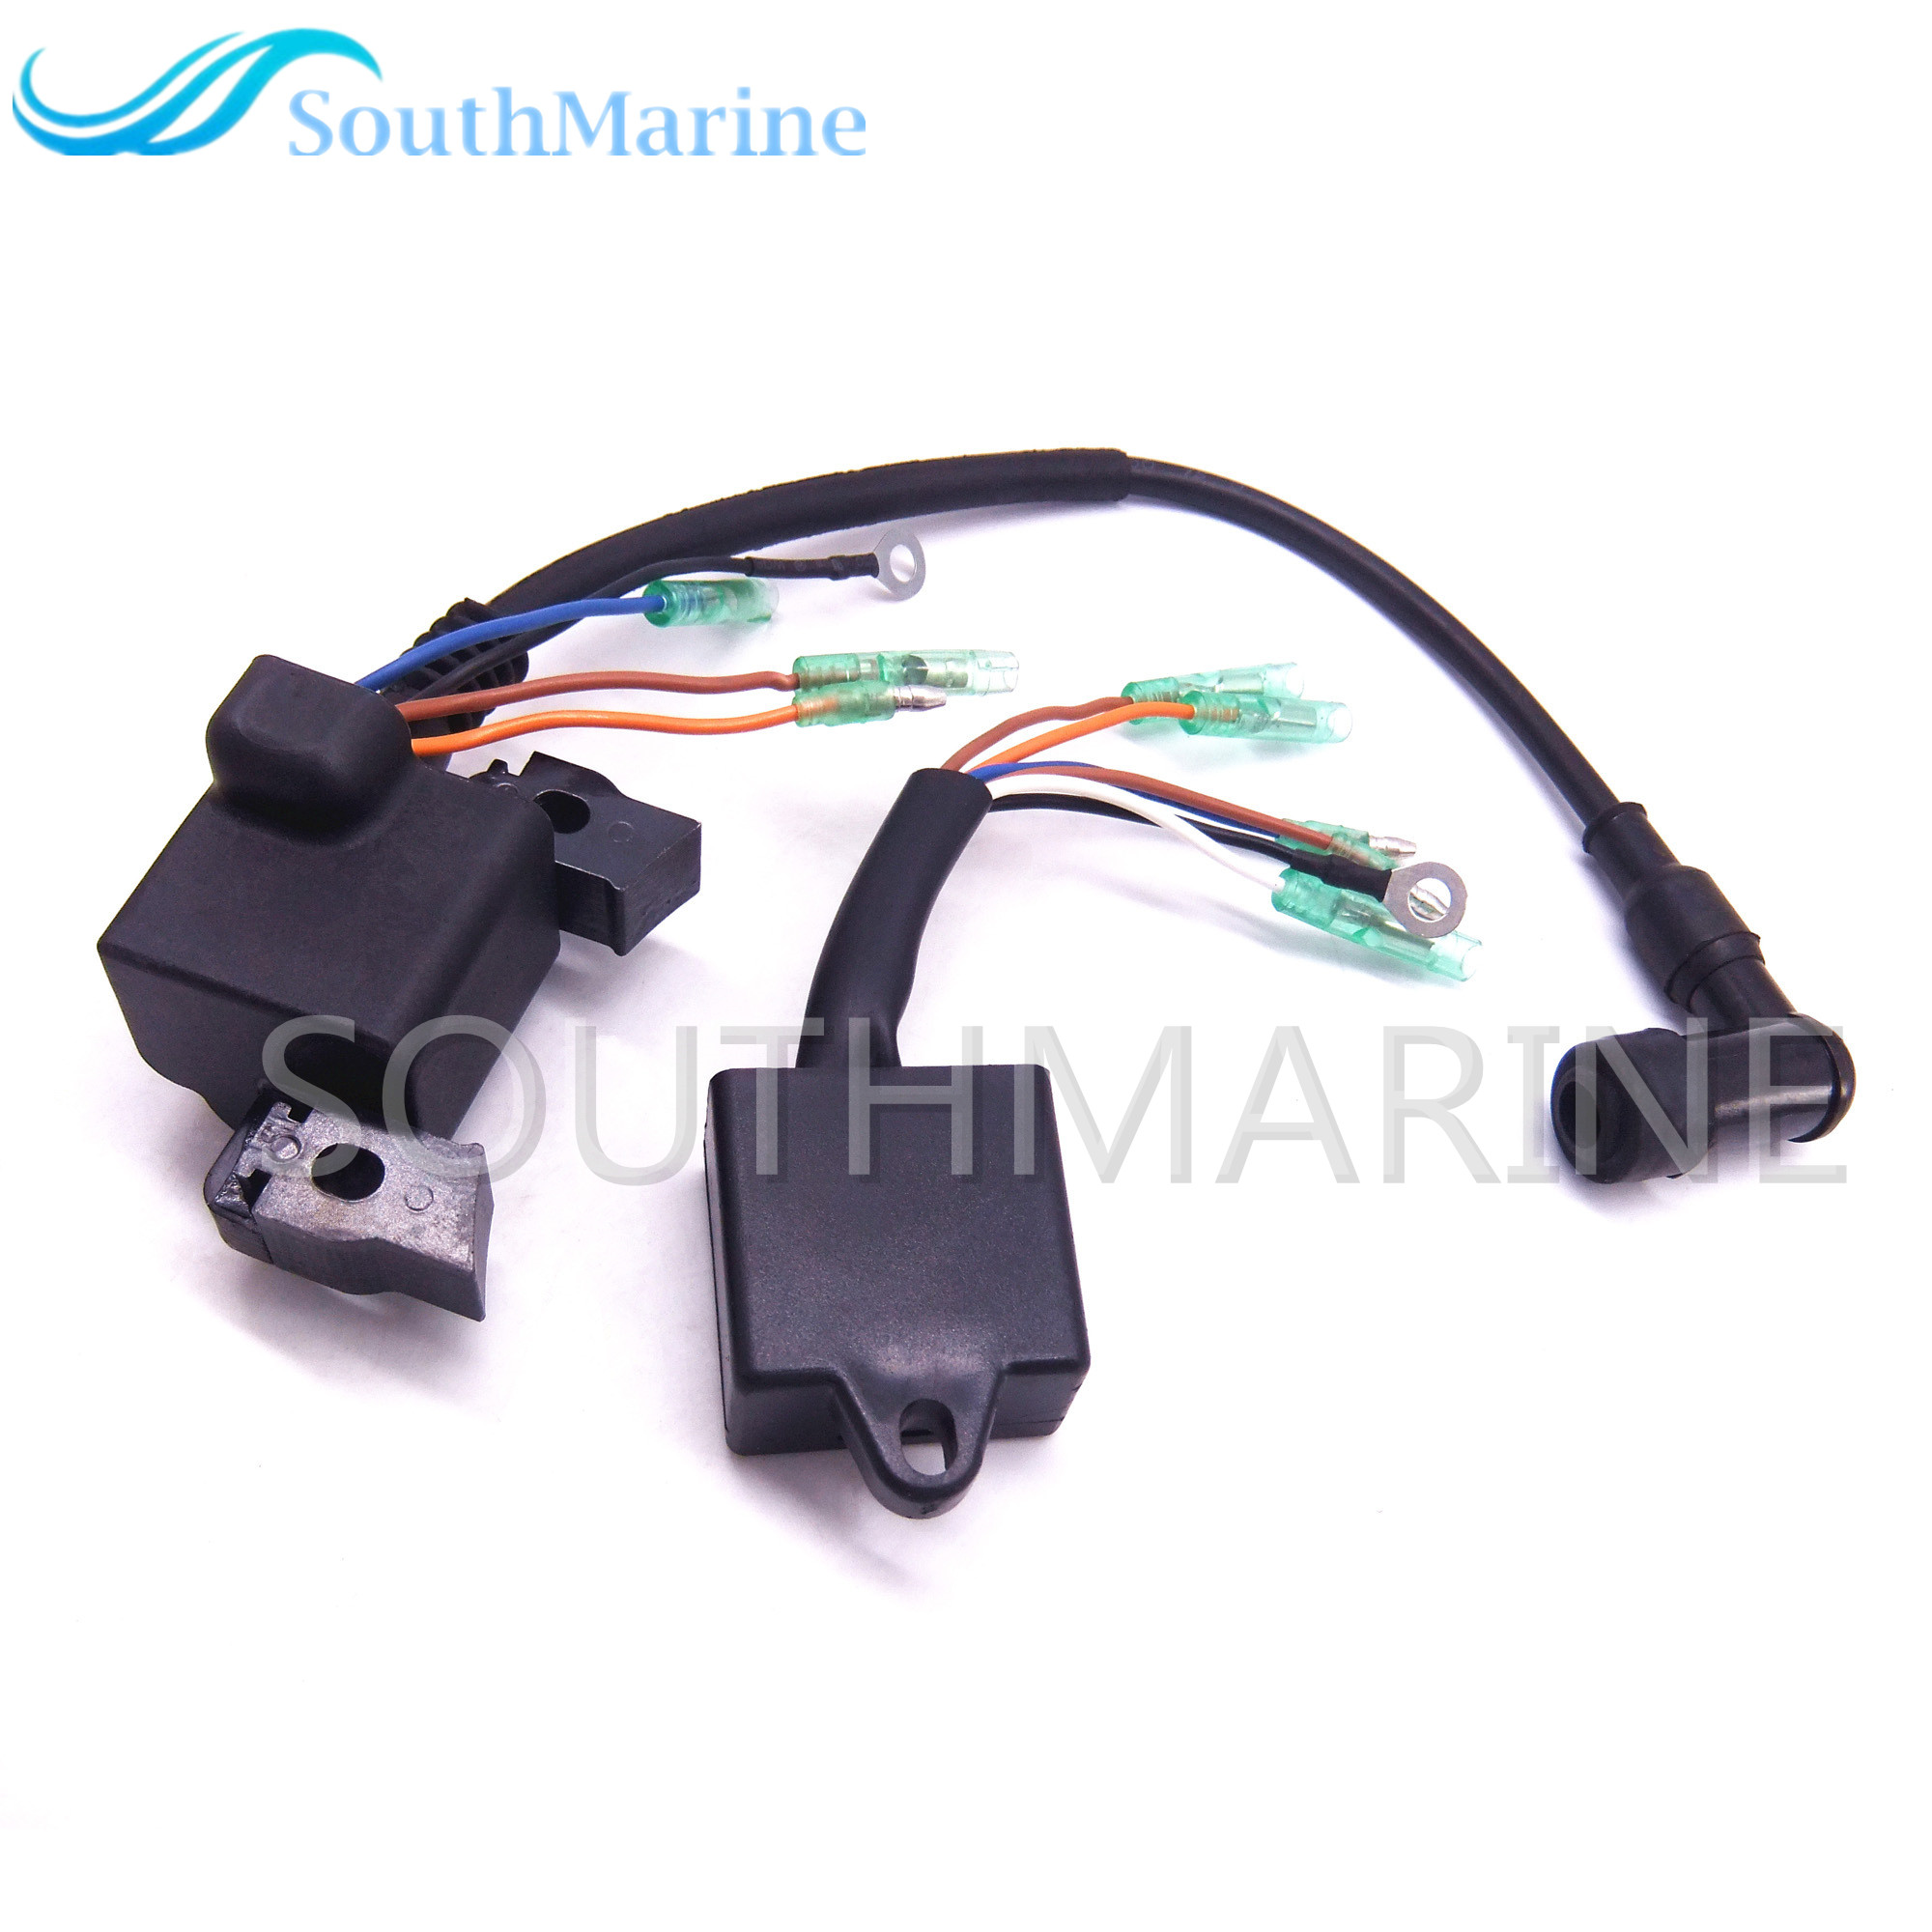 Outboard Engine Boat Motor Ignition Coil and CDI for Hangkai F6.5 6.5 HP 4-strokeOutboard Engine Boat Motor Ignition Coil and CDI for Hangkai F6.5 6.5 HP 4-stroke